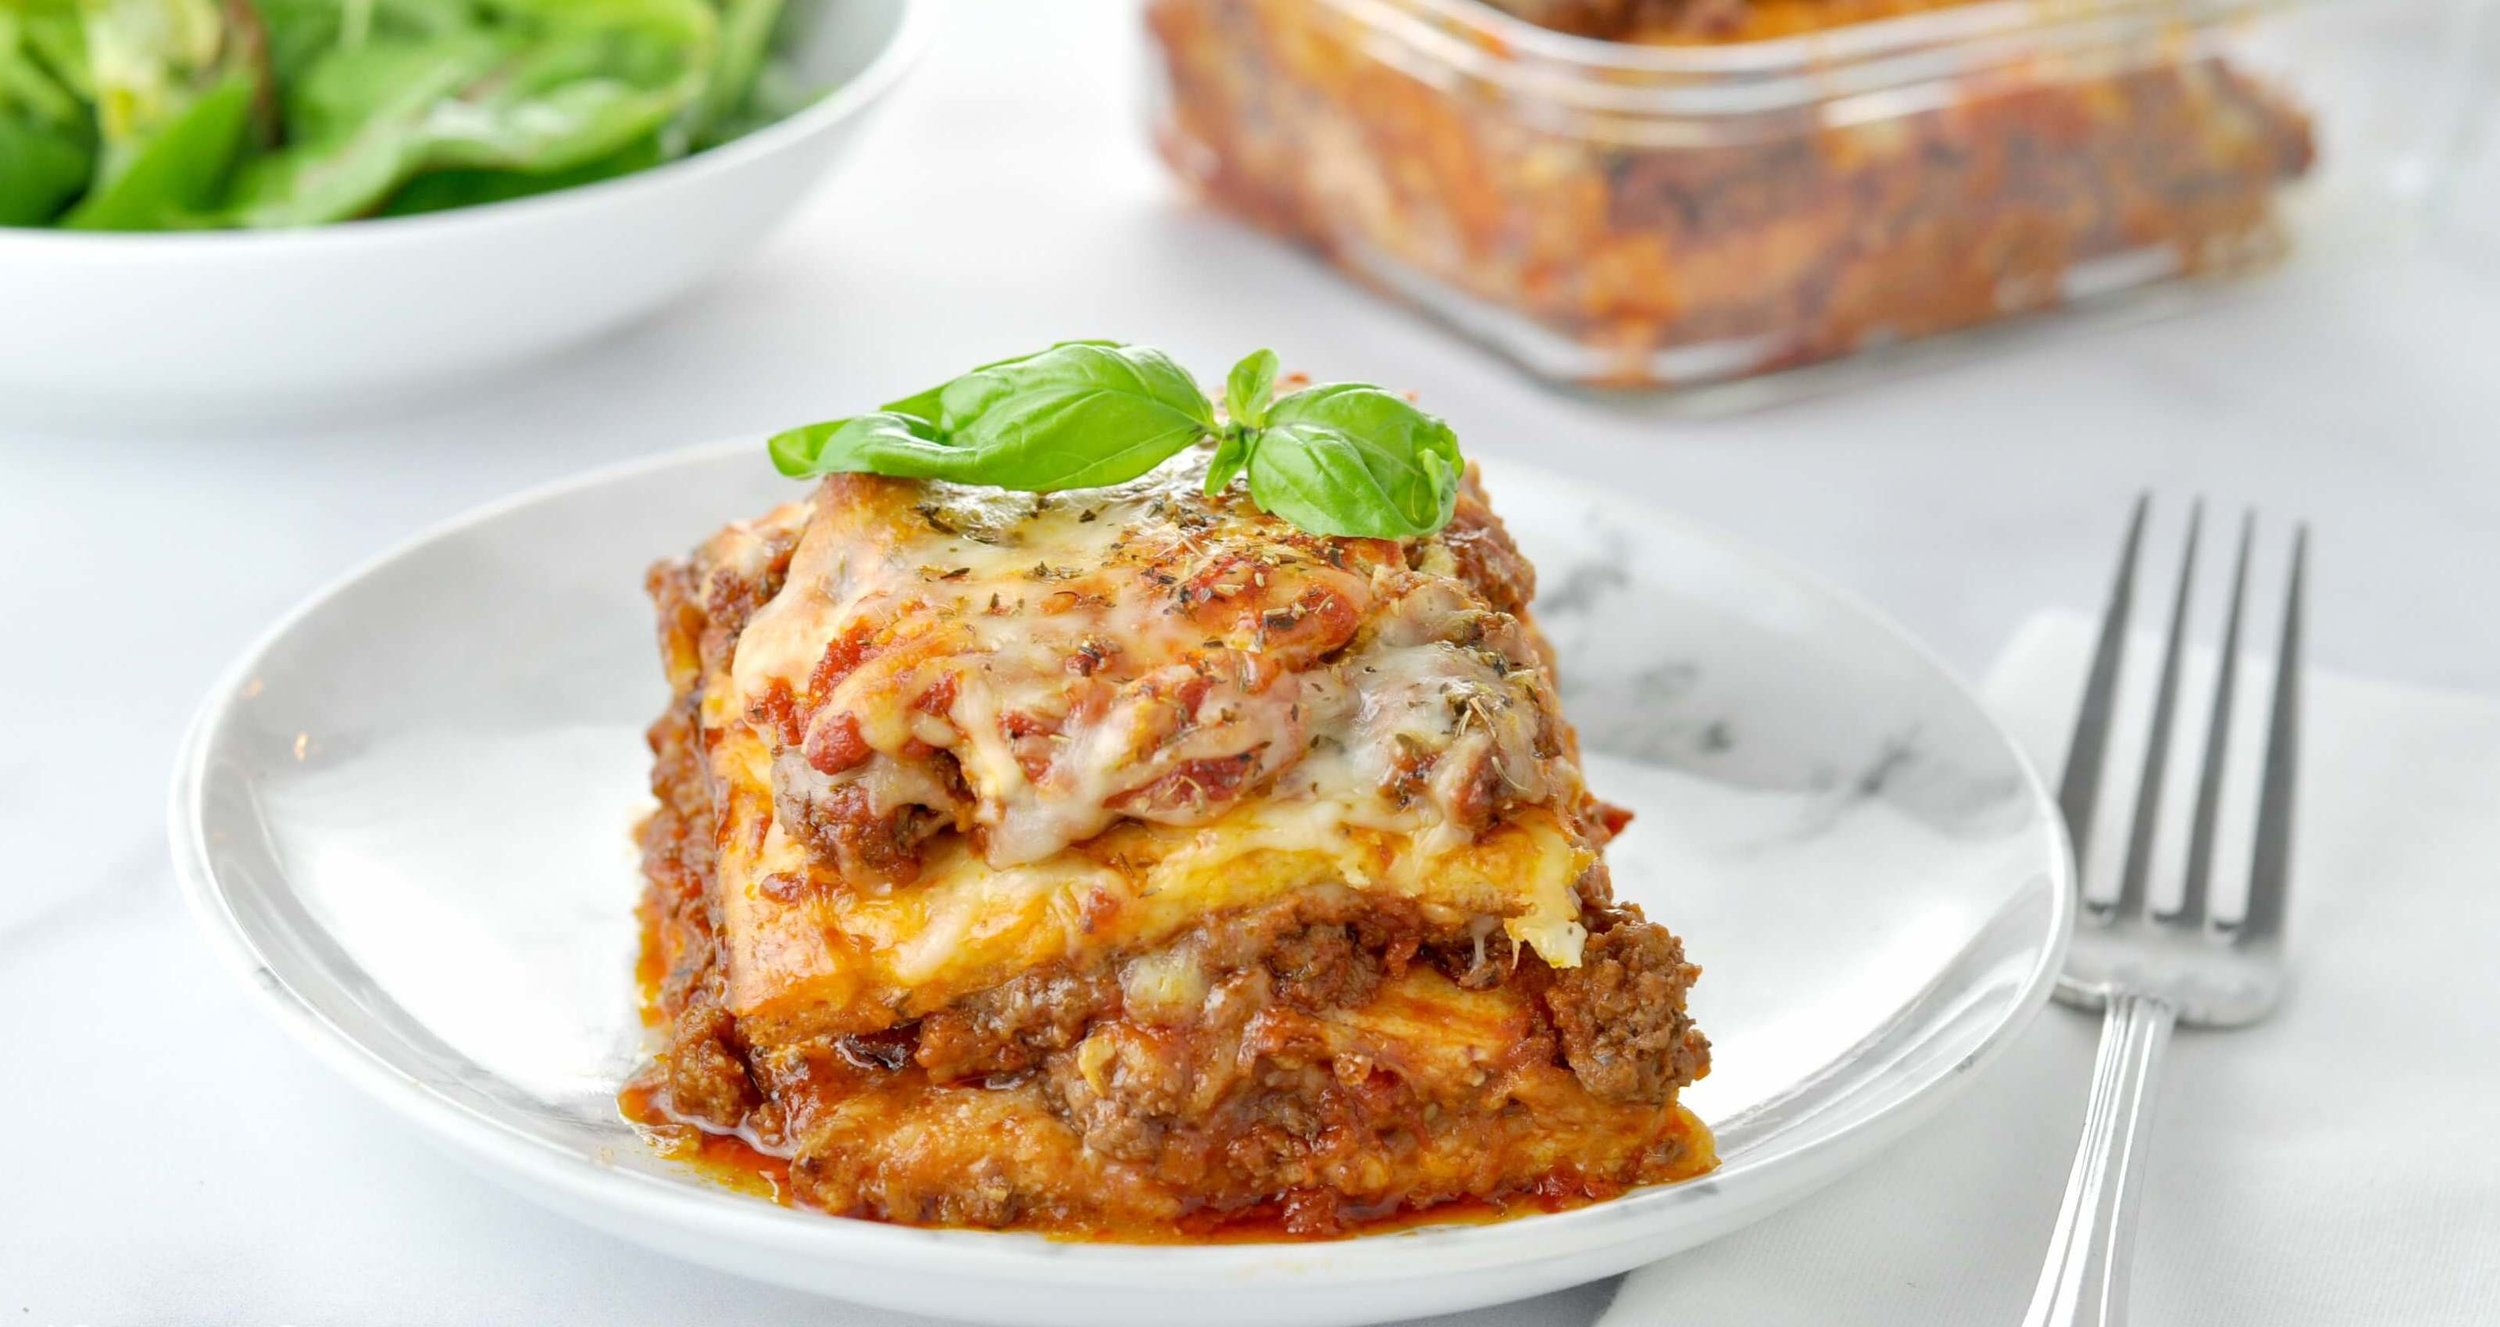 Keto-Just-Like-the-Real-Thing-Lasagna-Peace-Love-and-Low-Carb.jpg